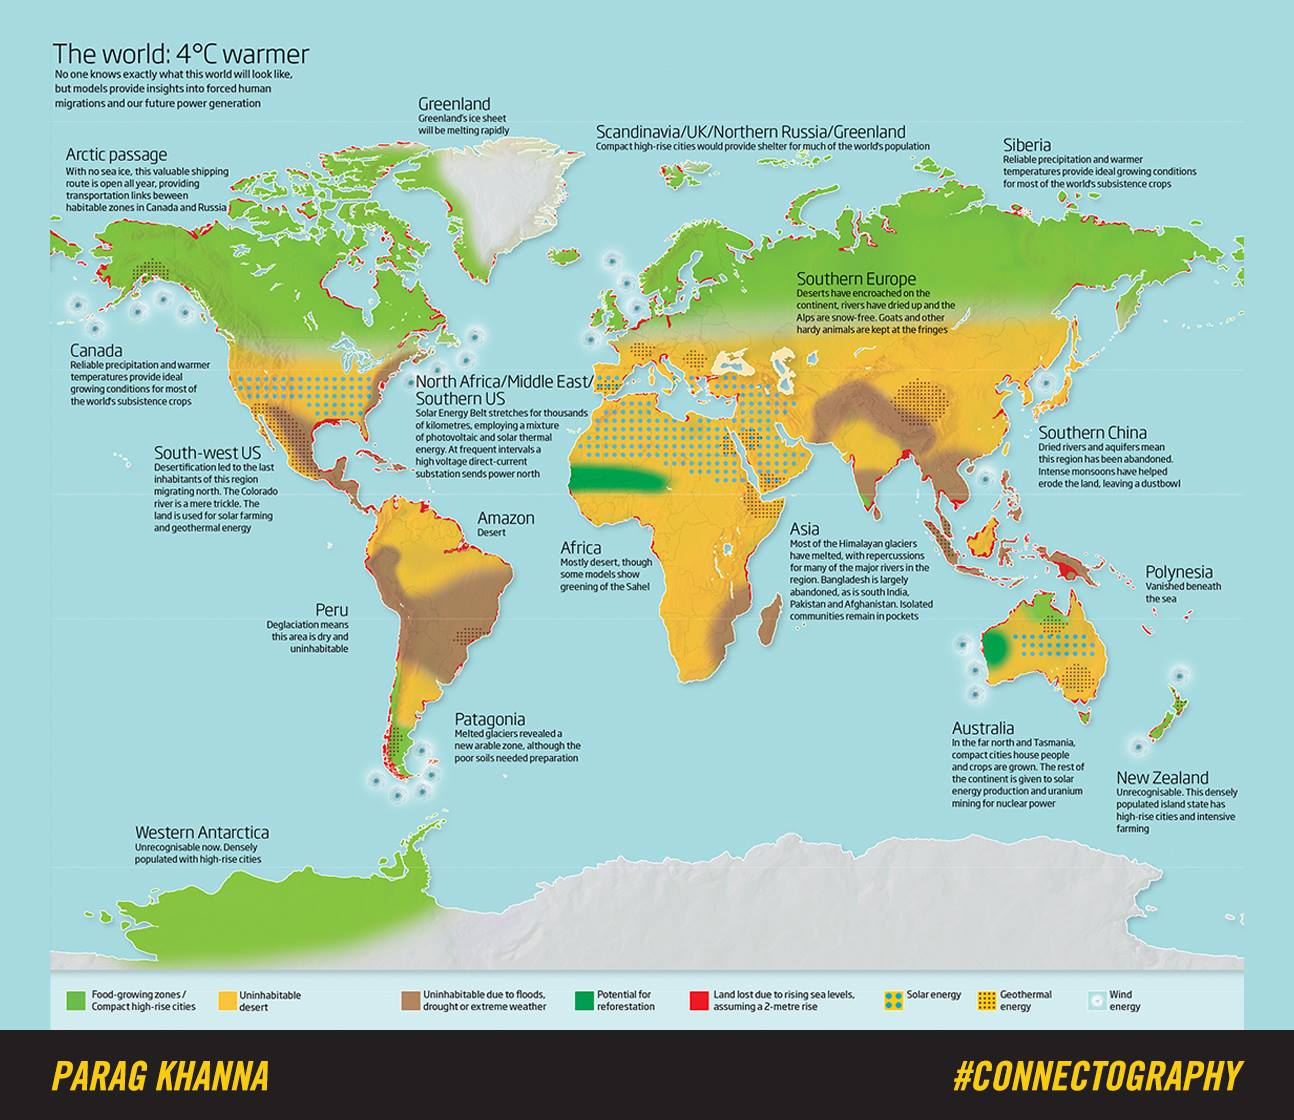 Global warming map by parag khanna shows results of 4c temp rise global warming map by parag khanna gumiabroncs Images